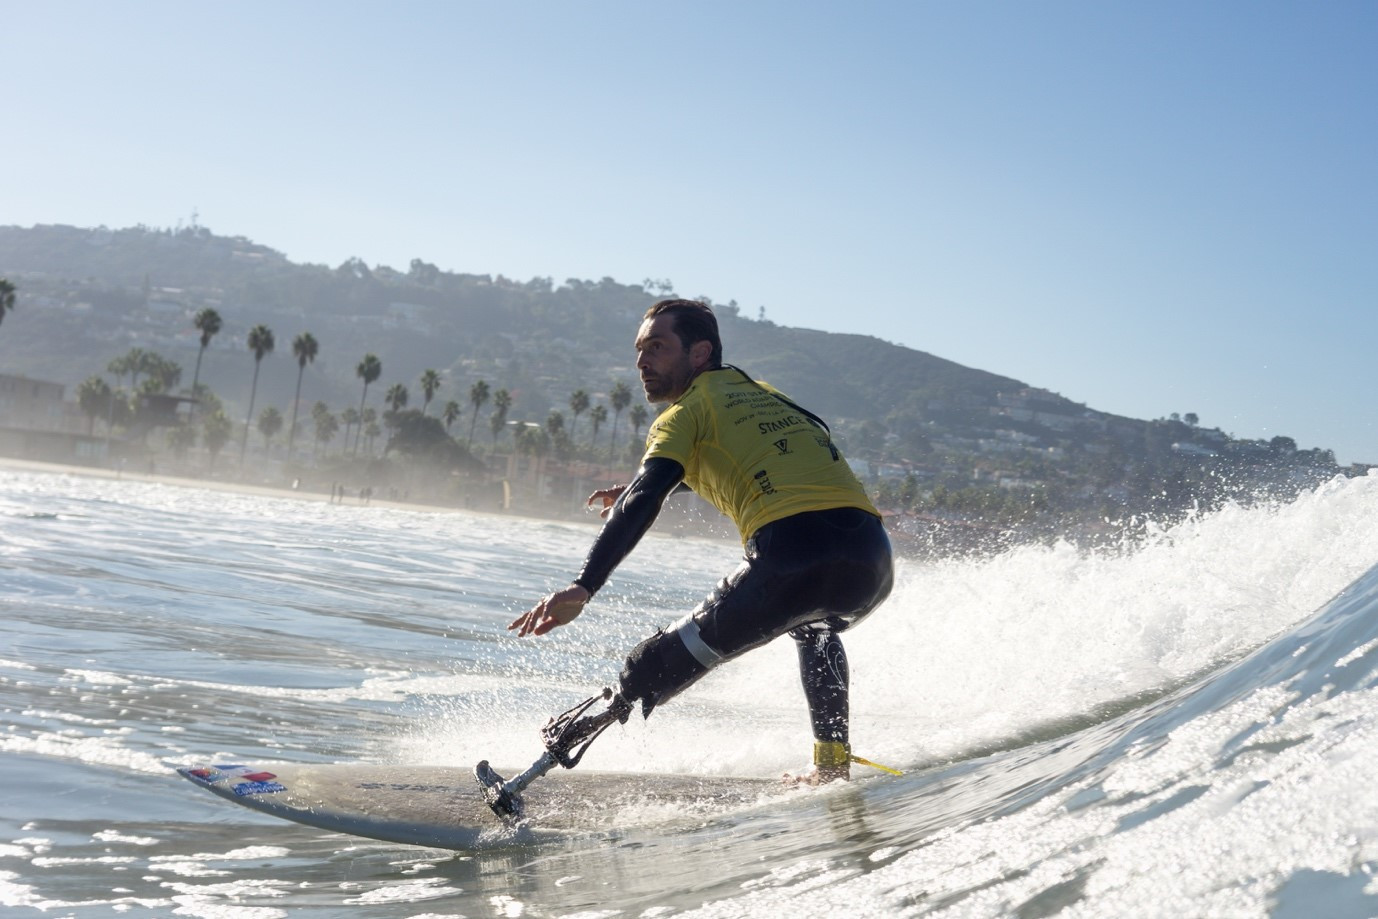 ISA launches certification programme for instructors of adaptive surfing